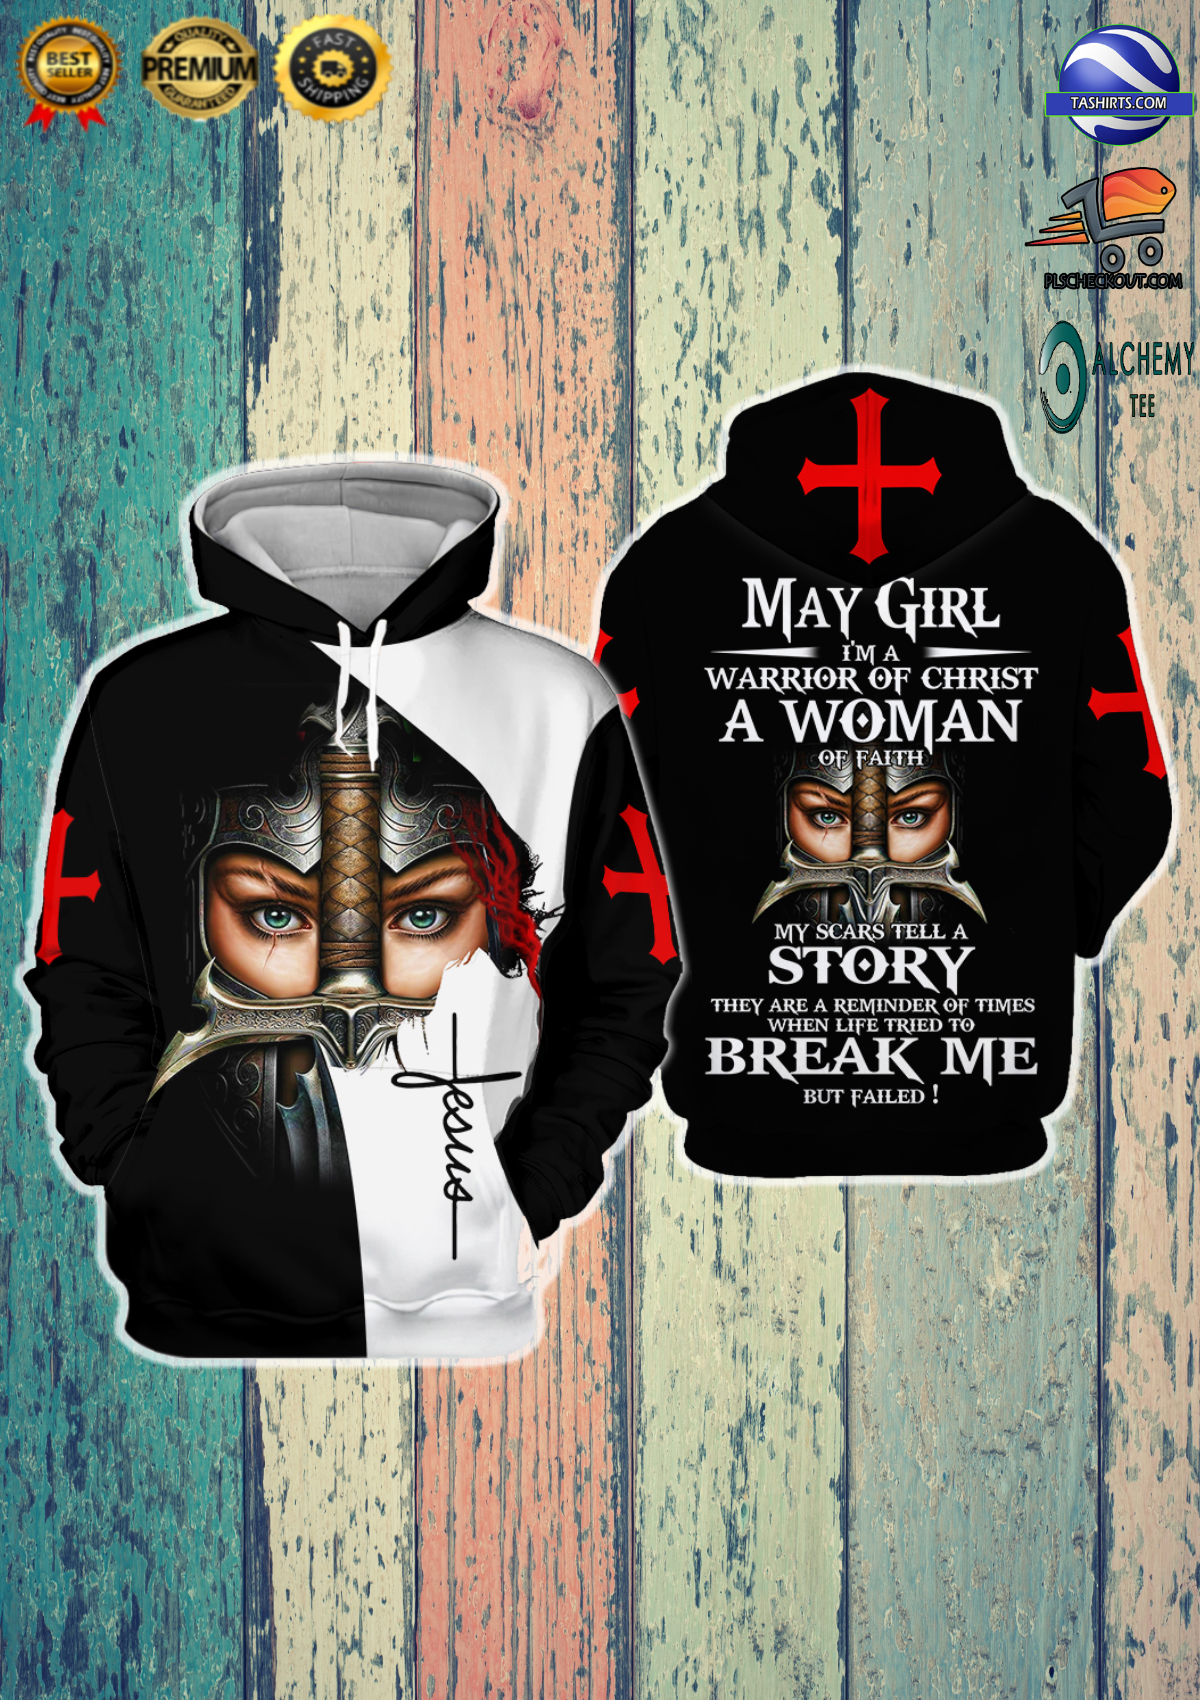 May Girl I'm A Warrior Of Christ 3D Hoodie and shirts